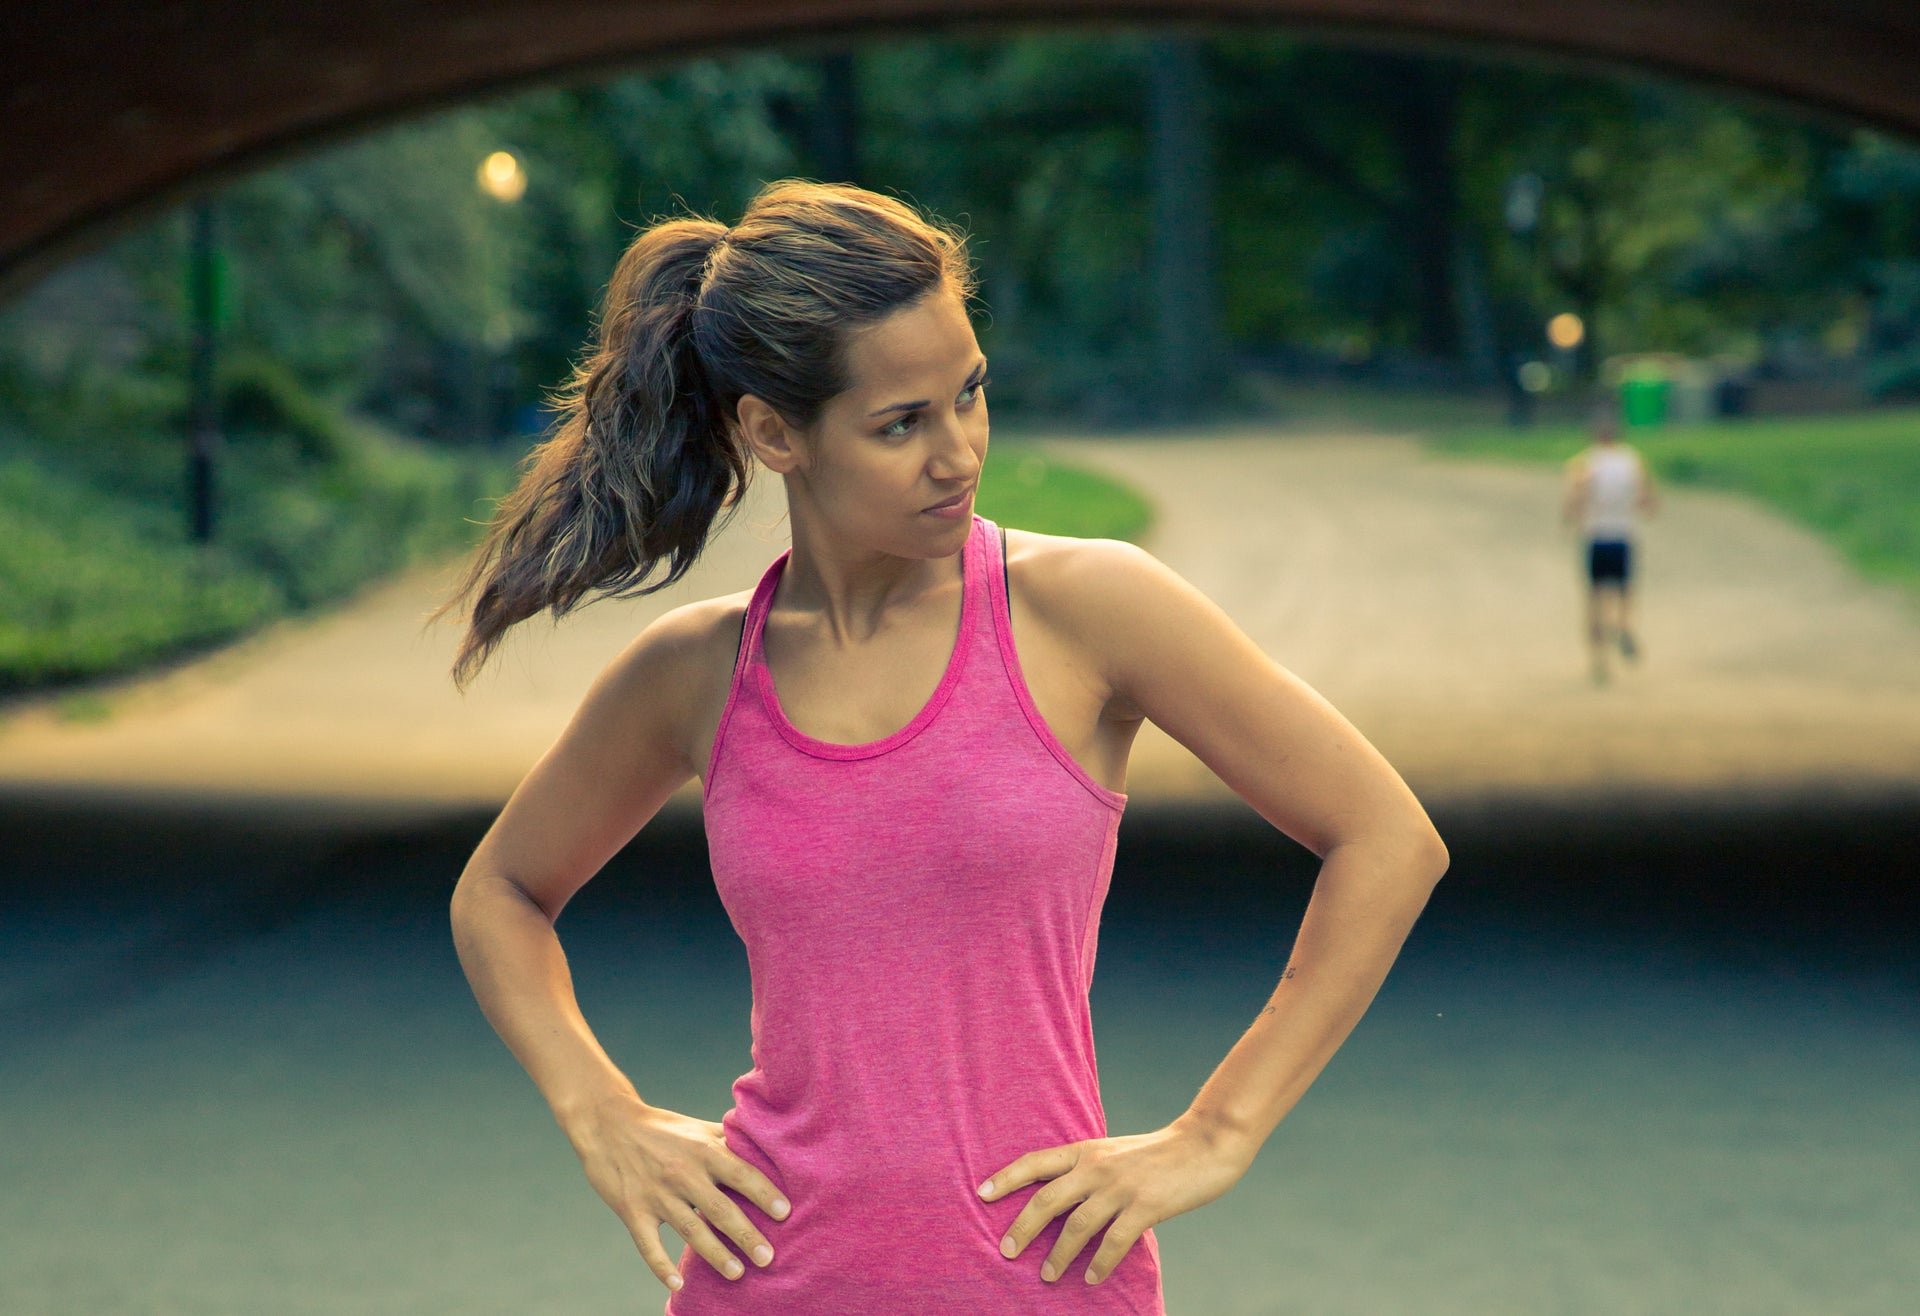 Fitness woman in the park